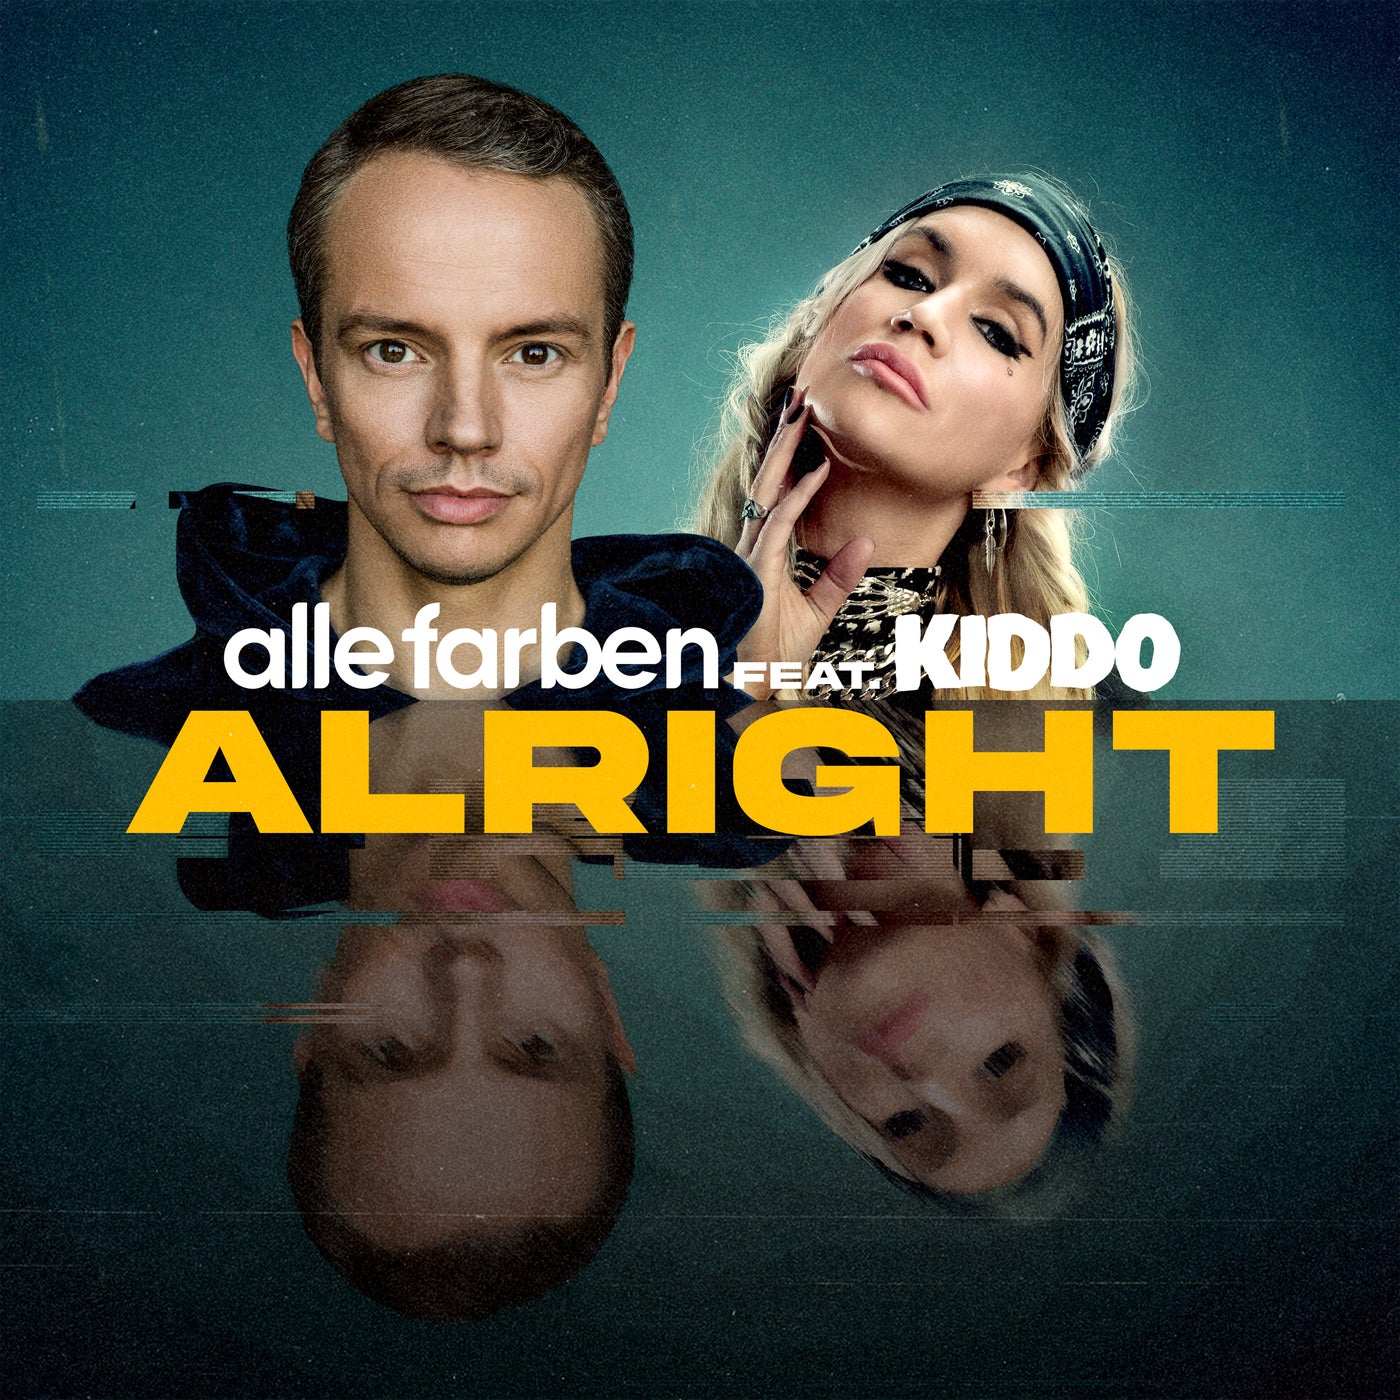 Alright (feat. KIDDO) (Extended Mix)